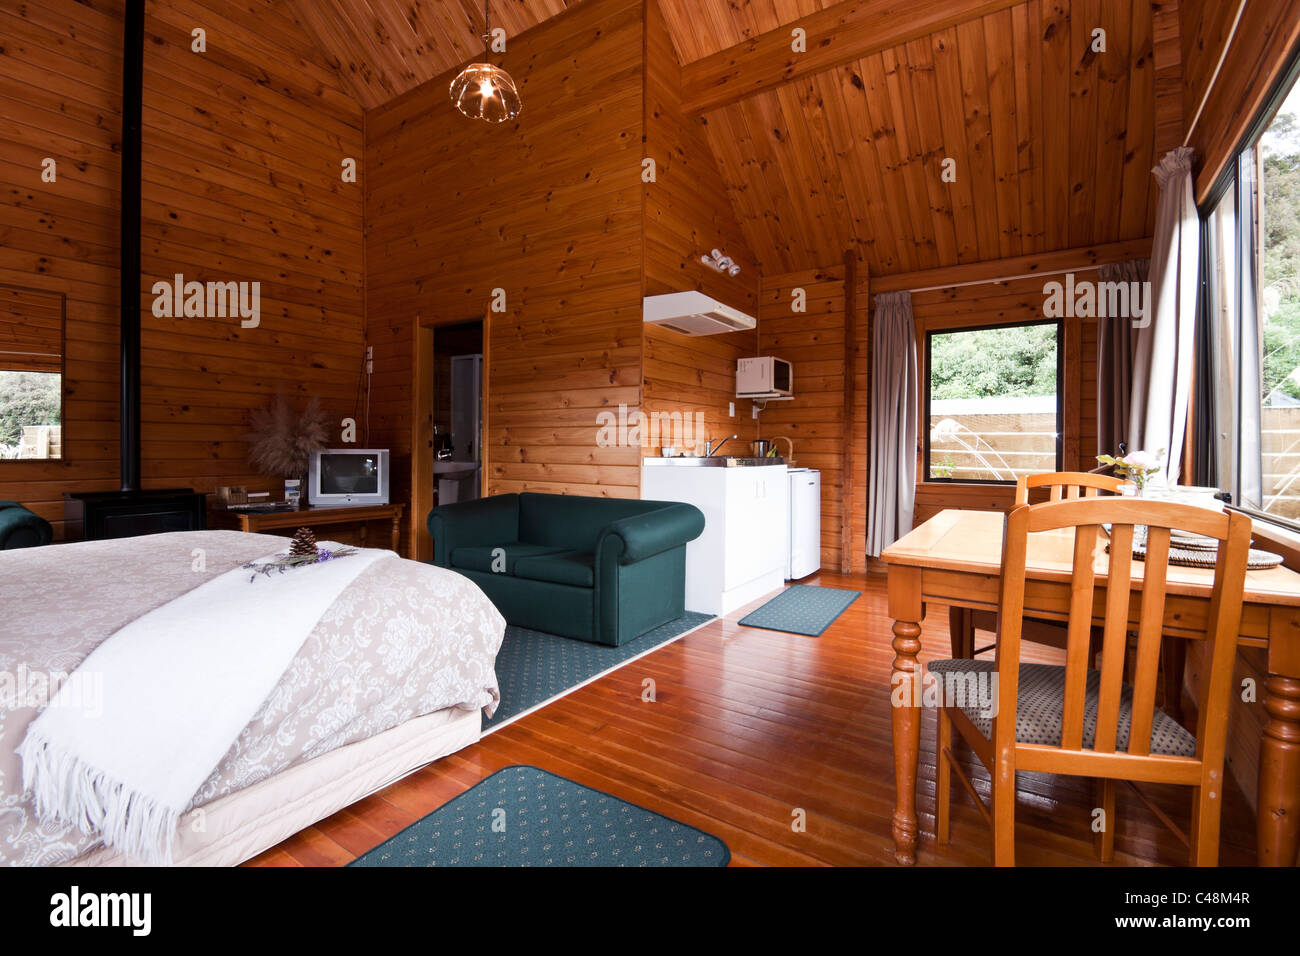 Nice warm interior of mountain lodge apartment. Fox Glacier Lodge, Fox Glacier, West Coast, South Island, New Zealand. - Stock Image